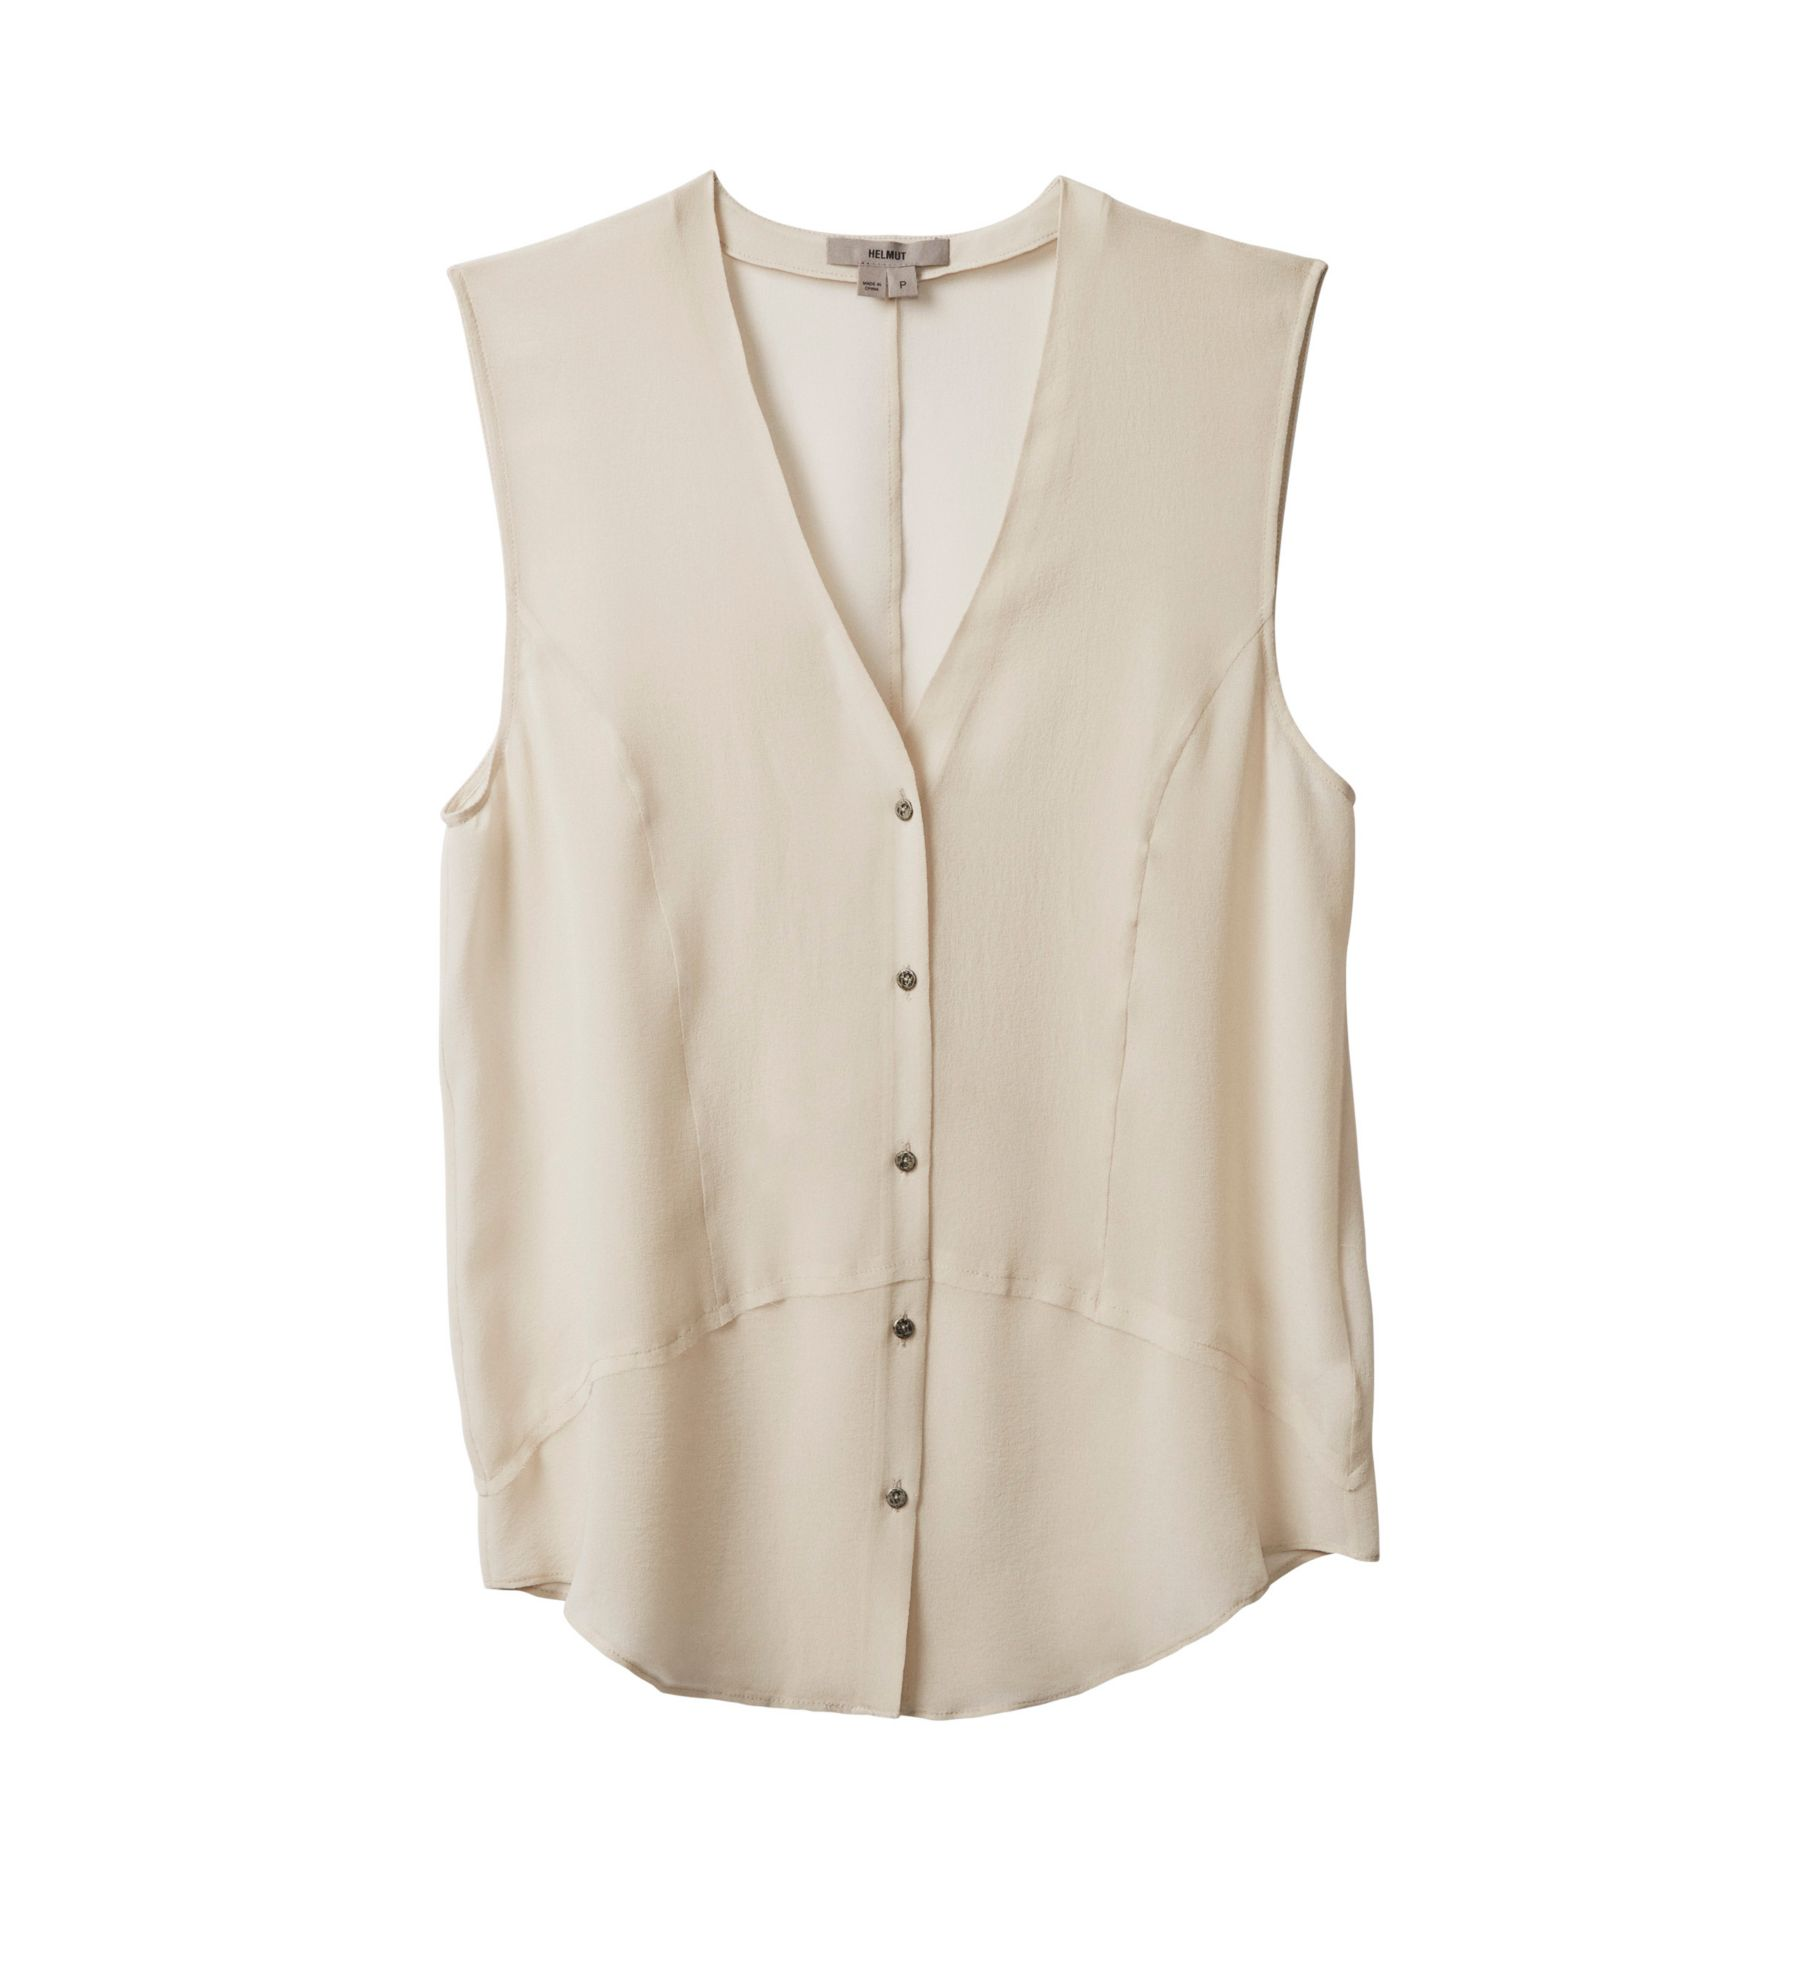 GHOST SILK SLEEVELESS TOP